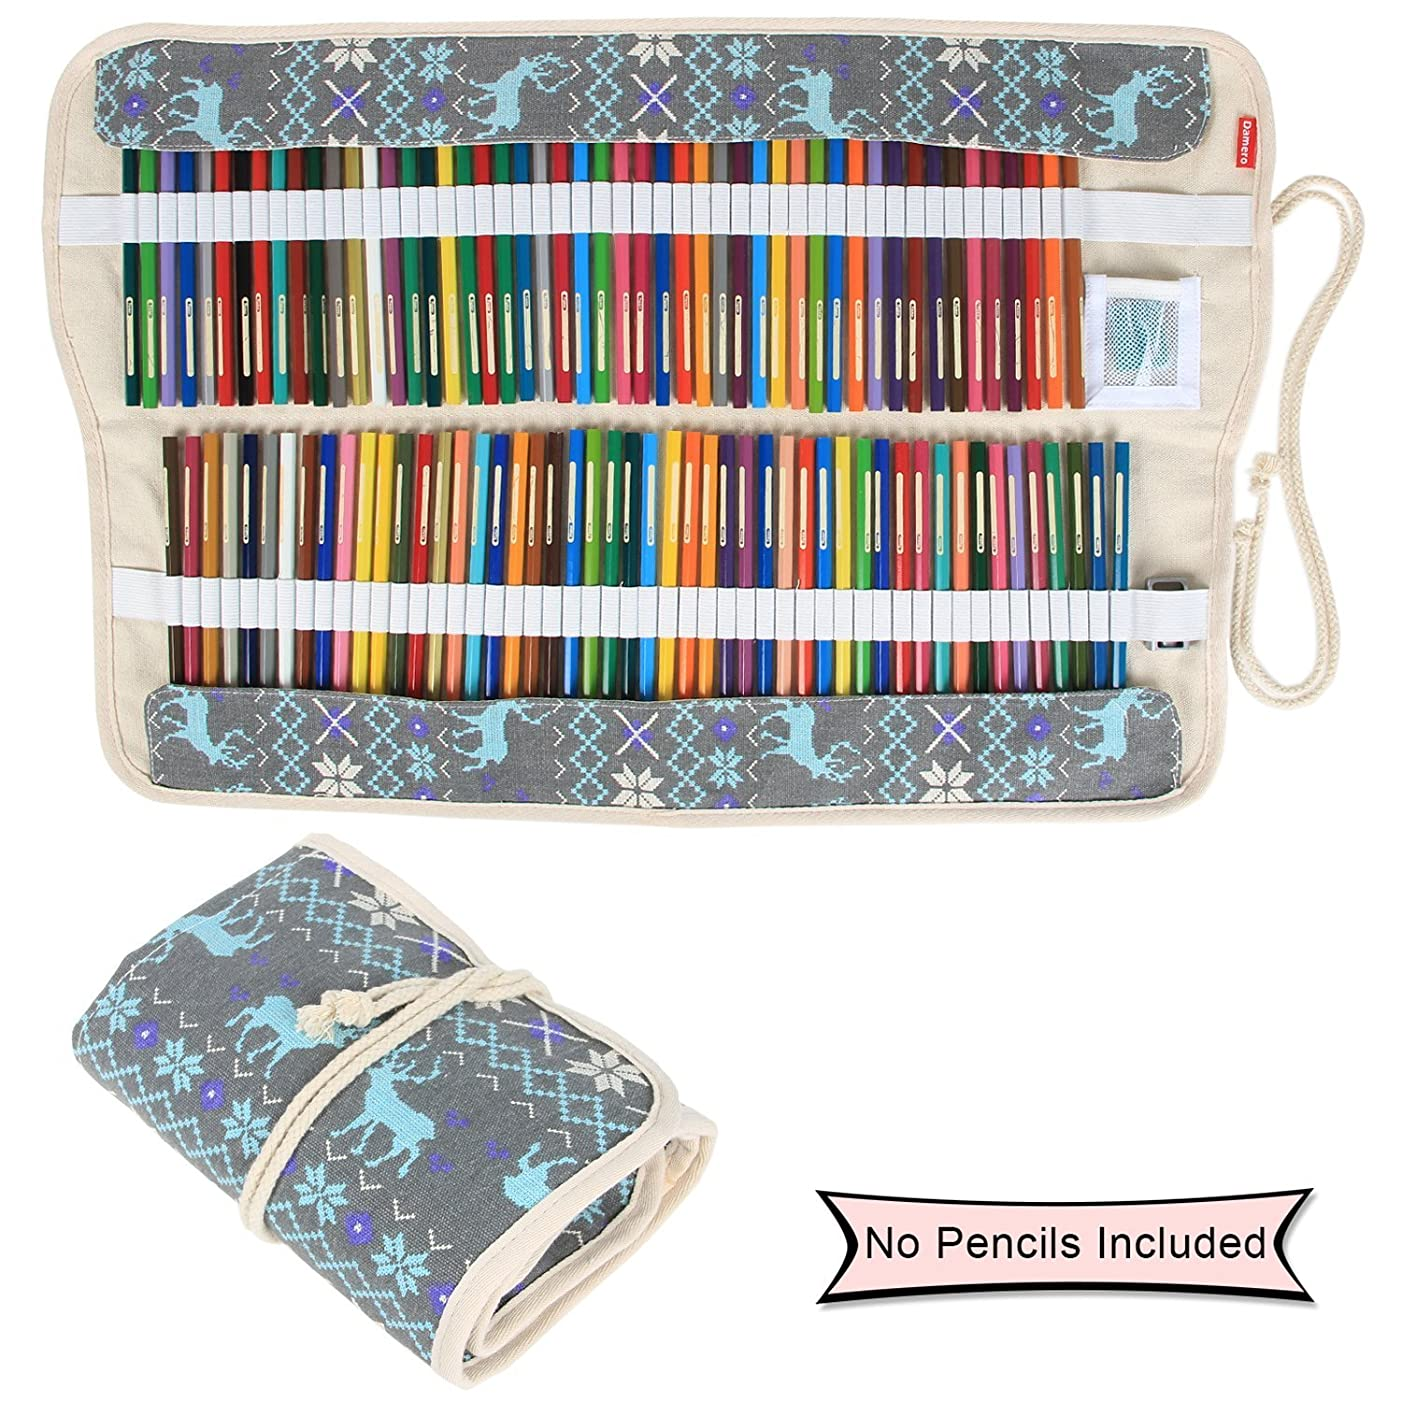 Damero Colored Pencils Case Wrap 100 Holes, Canvas Wrap Pencil Holder Storage Organizer Roll with Multi-purpose Pouch for Artist and Students, Elk (NO Pencil Included)